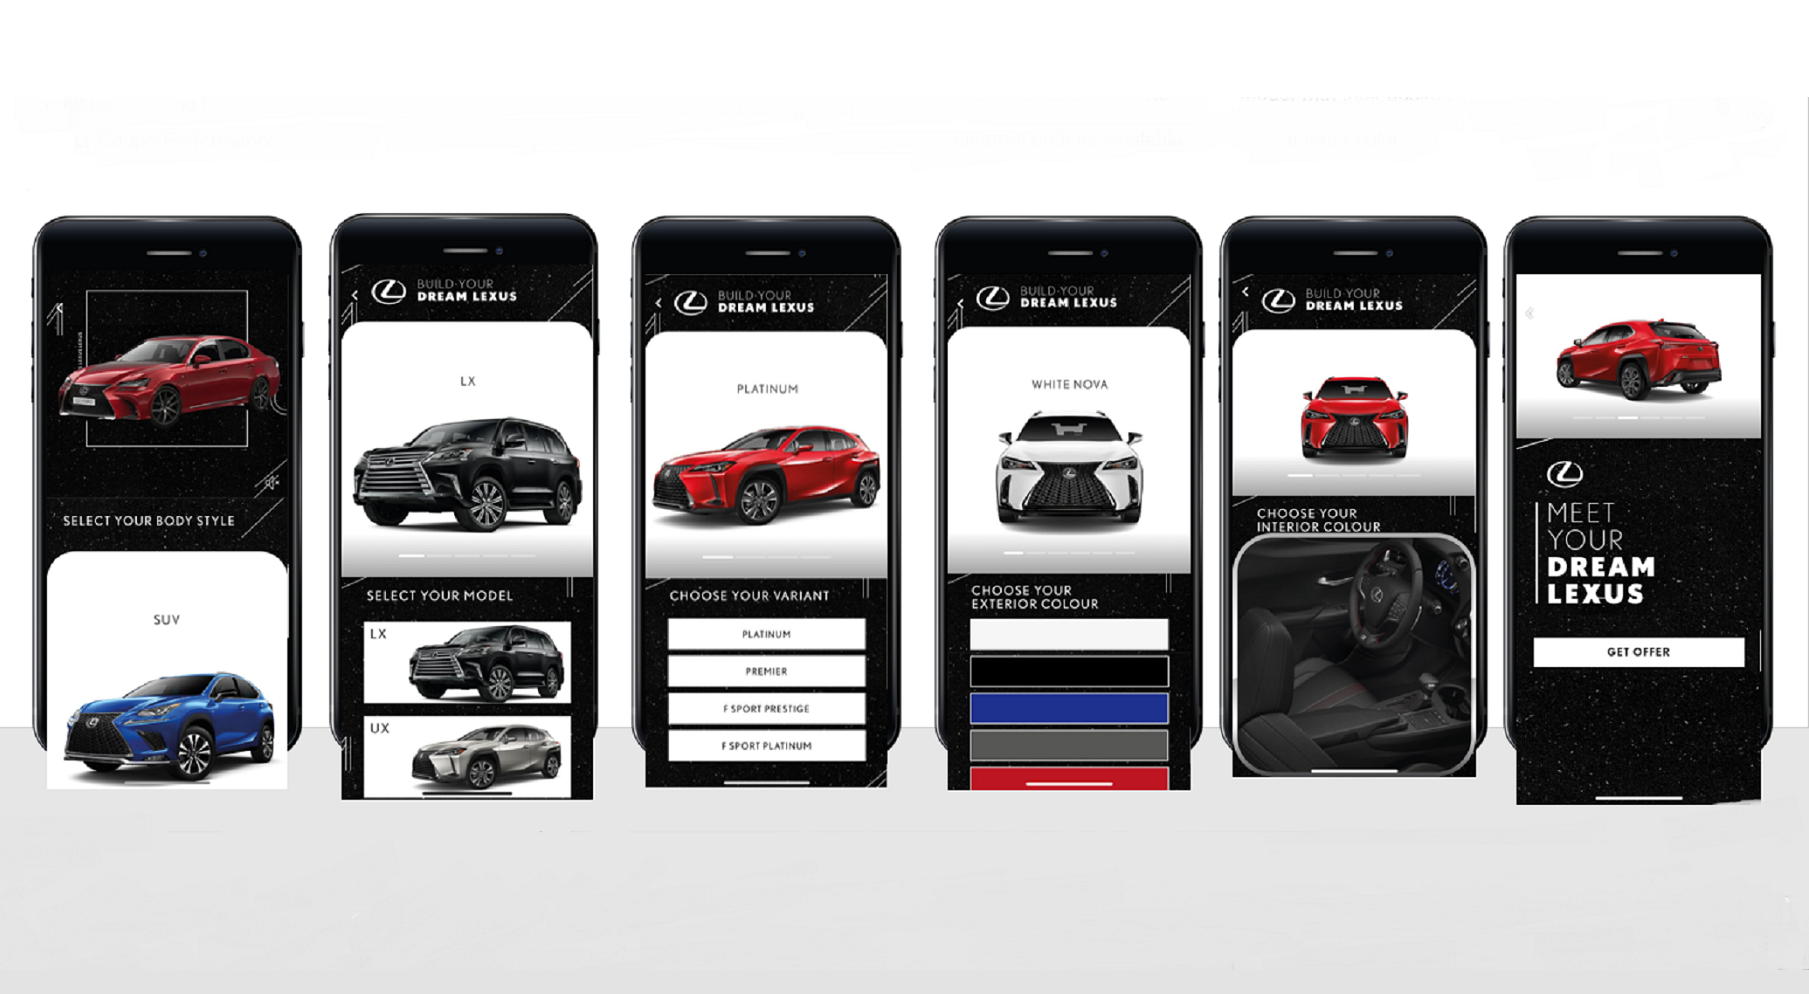 how-memac-ogilvy-and-lexus-built-a-seamless-online-car-buying-experience-with-facebook